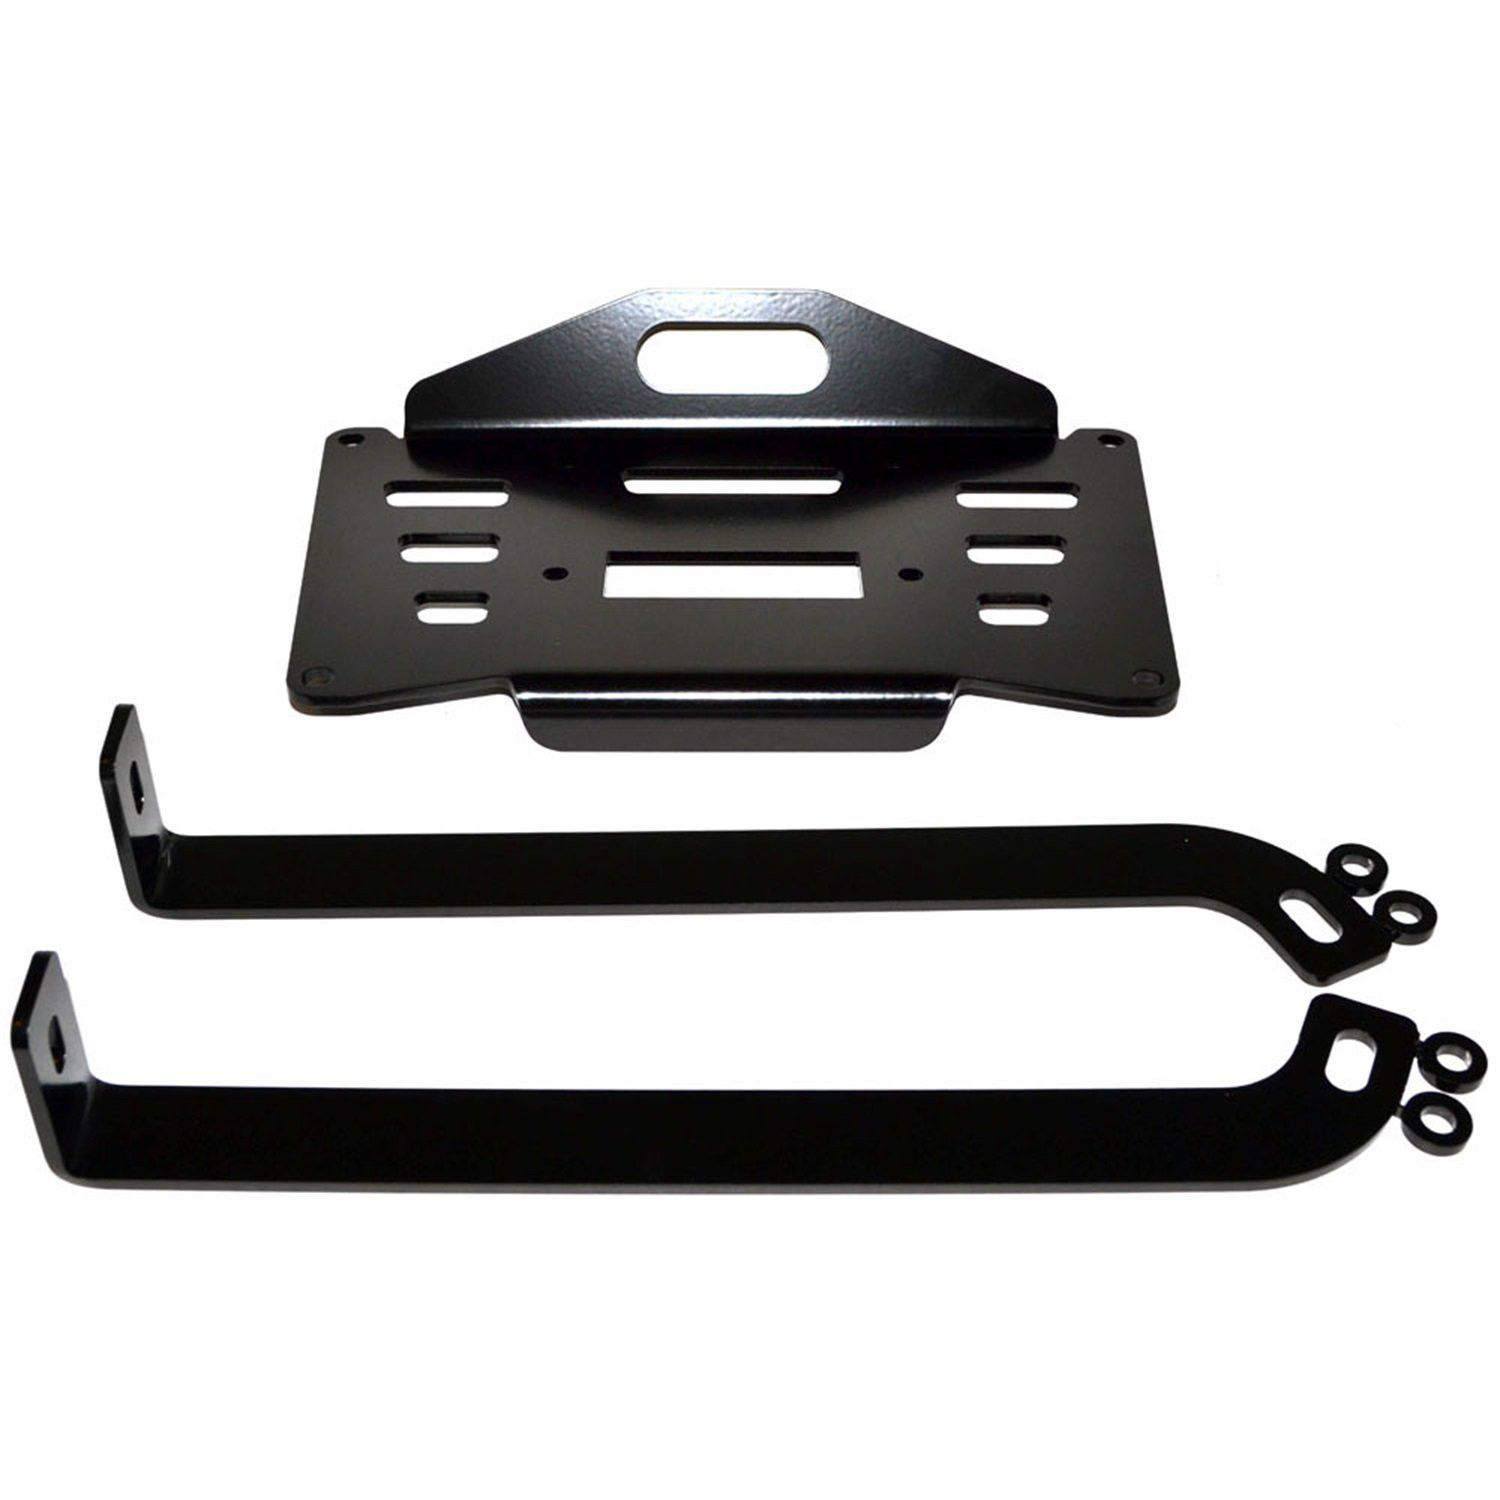 medium resolution of see montana jack s for warn winches mounts accessories parts and repair